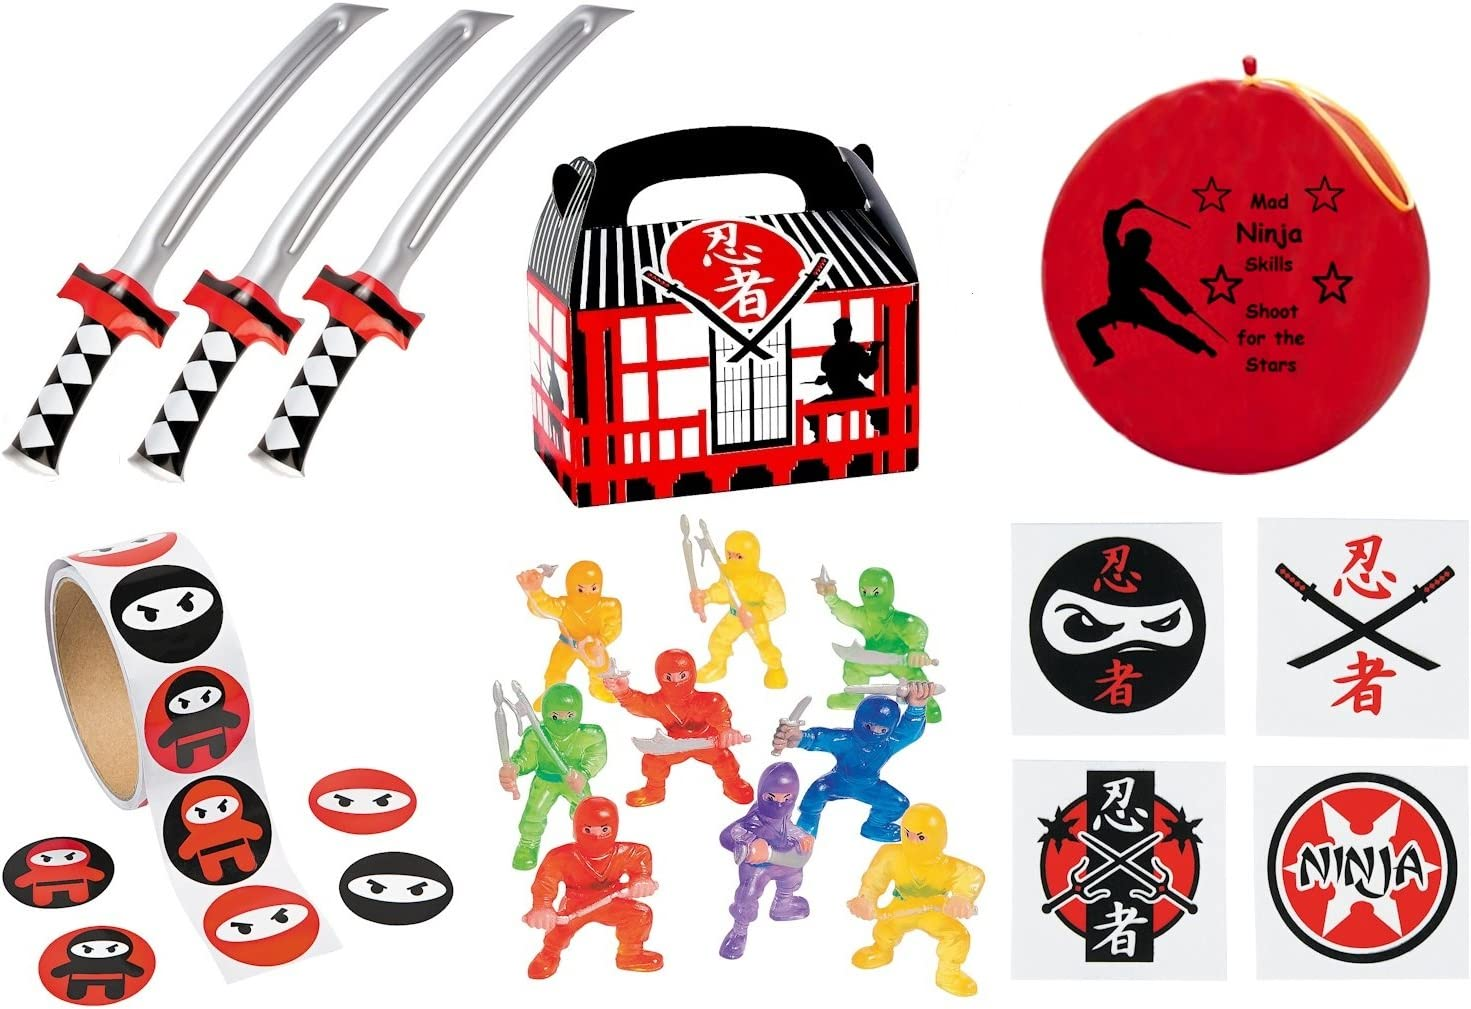 220 pc Ninja Warrior Kids Birthday Party Favor Bundle Pack (100 pc Stickers, 12 Treat Boxes, 12 Inflatable Swords, 24 mini figures toys, 72 tattoos, ...